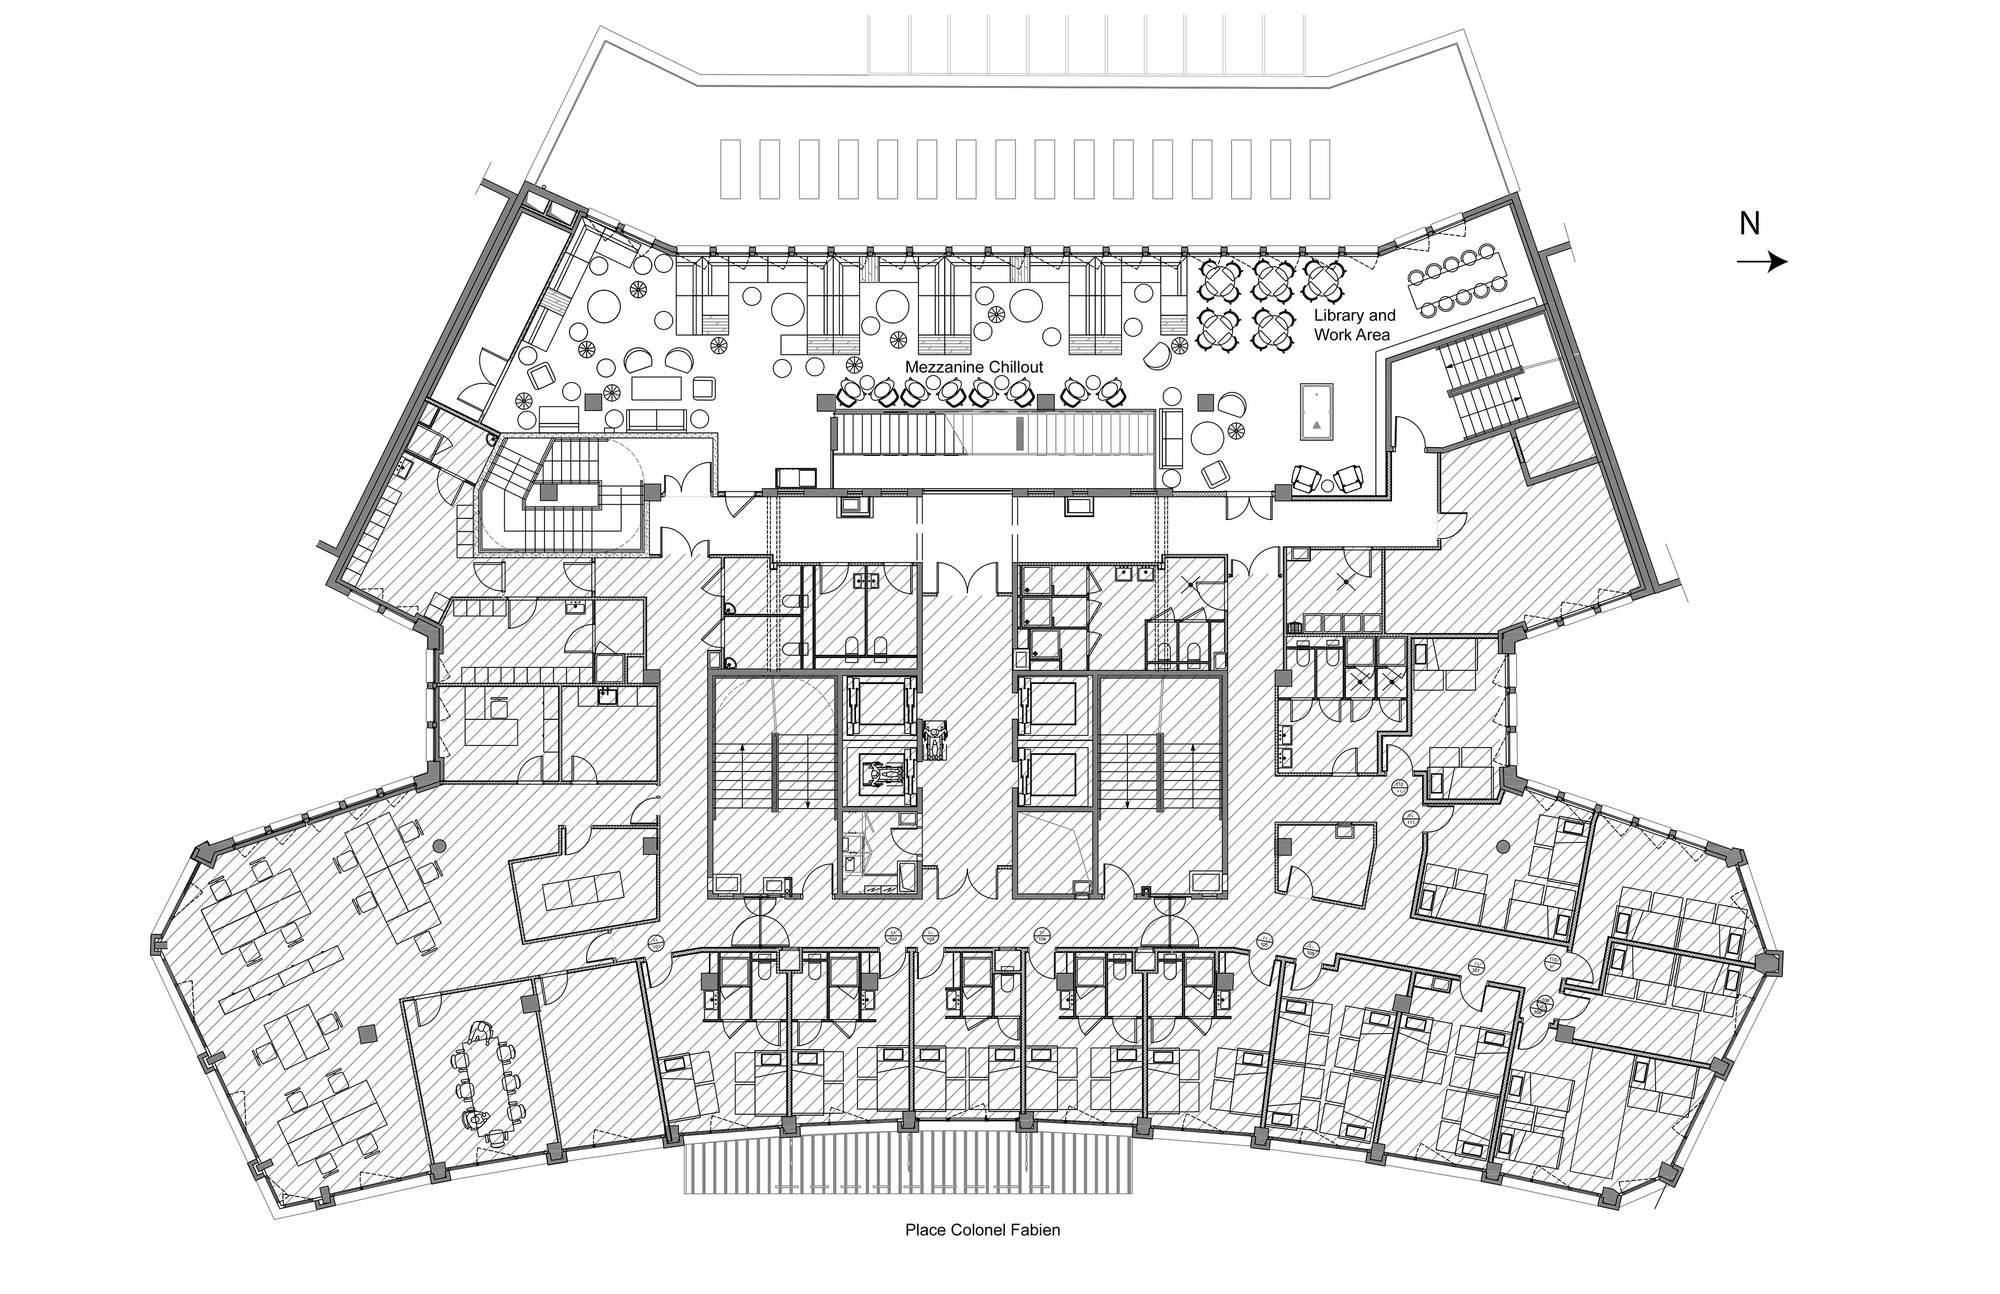 474215035740818884 together with R2112 together with 05 moreover Dormitory Ideas additionally The Basics How To Read Architectural Plans. on dorm room floor plan ideas